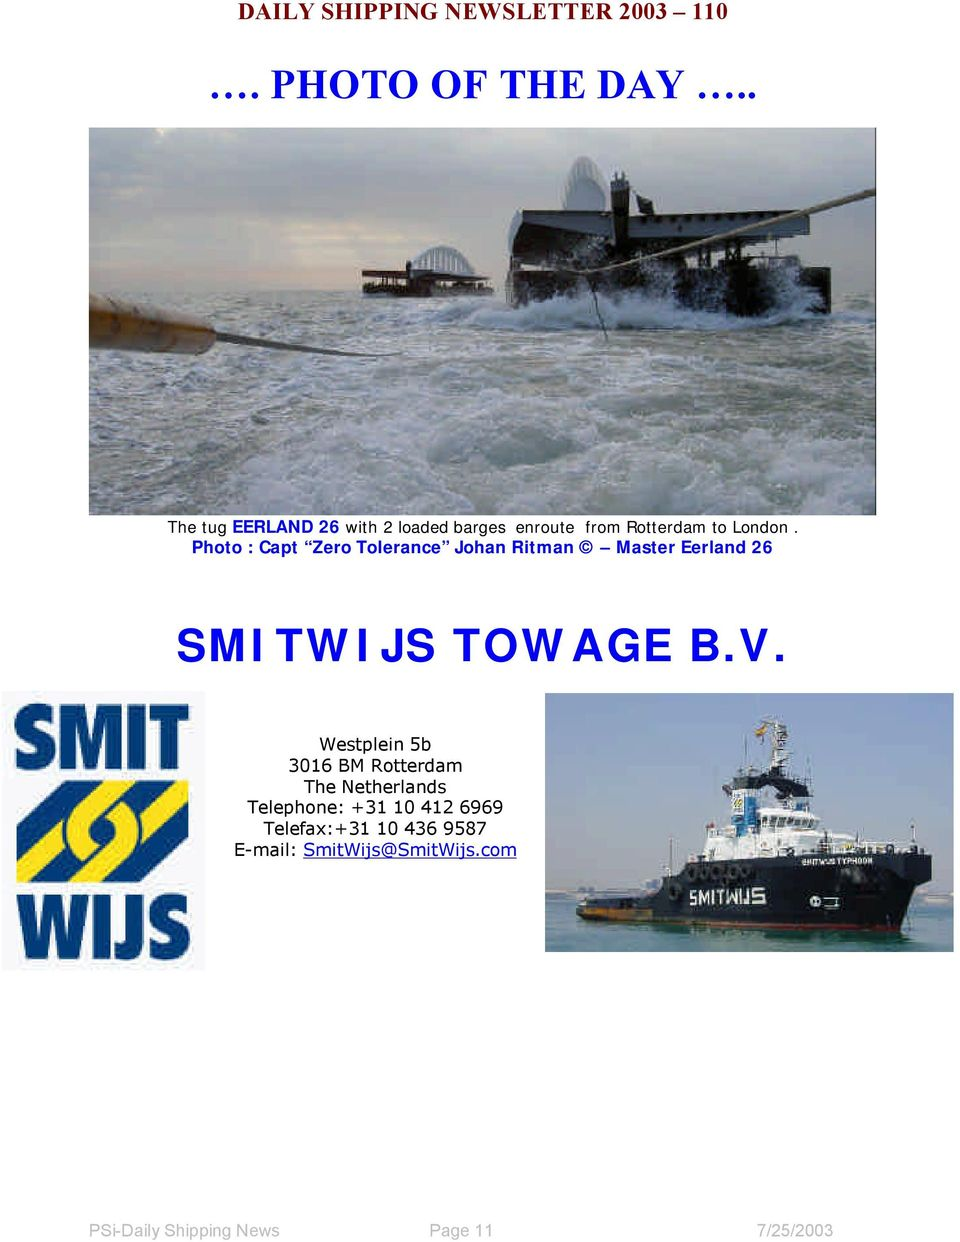 Photo : Capt Zero Tolerance Johan Ritman Master Eerland 26 SMITWIJS TOWAGE B.V.